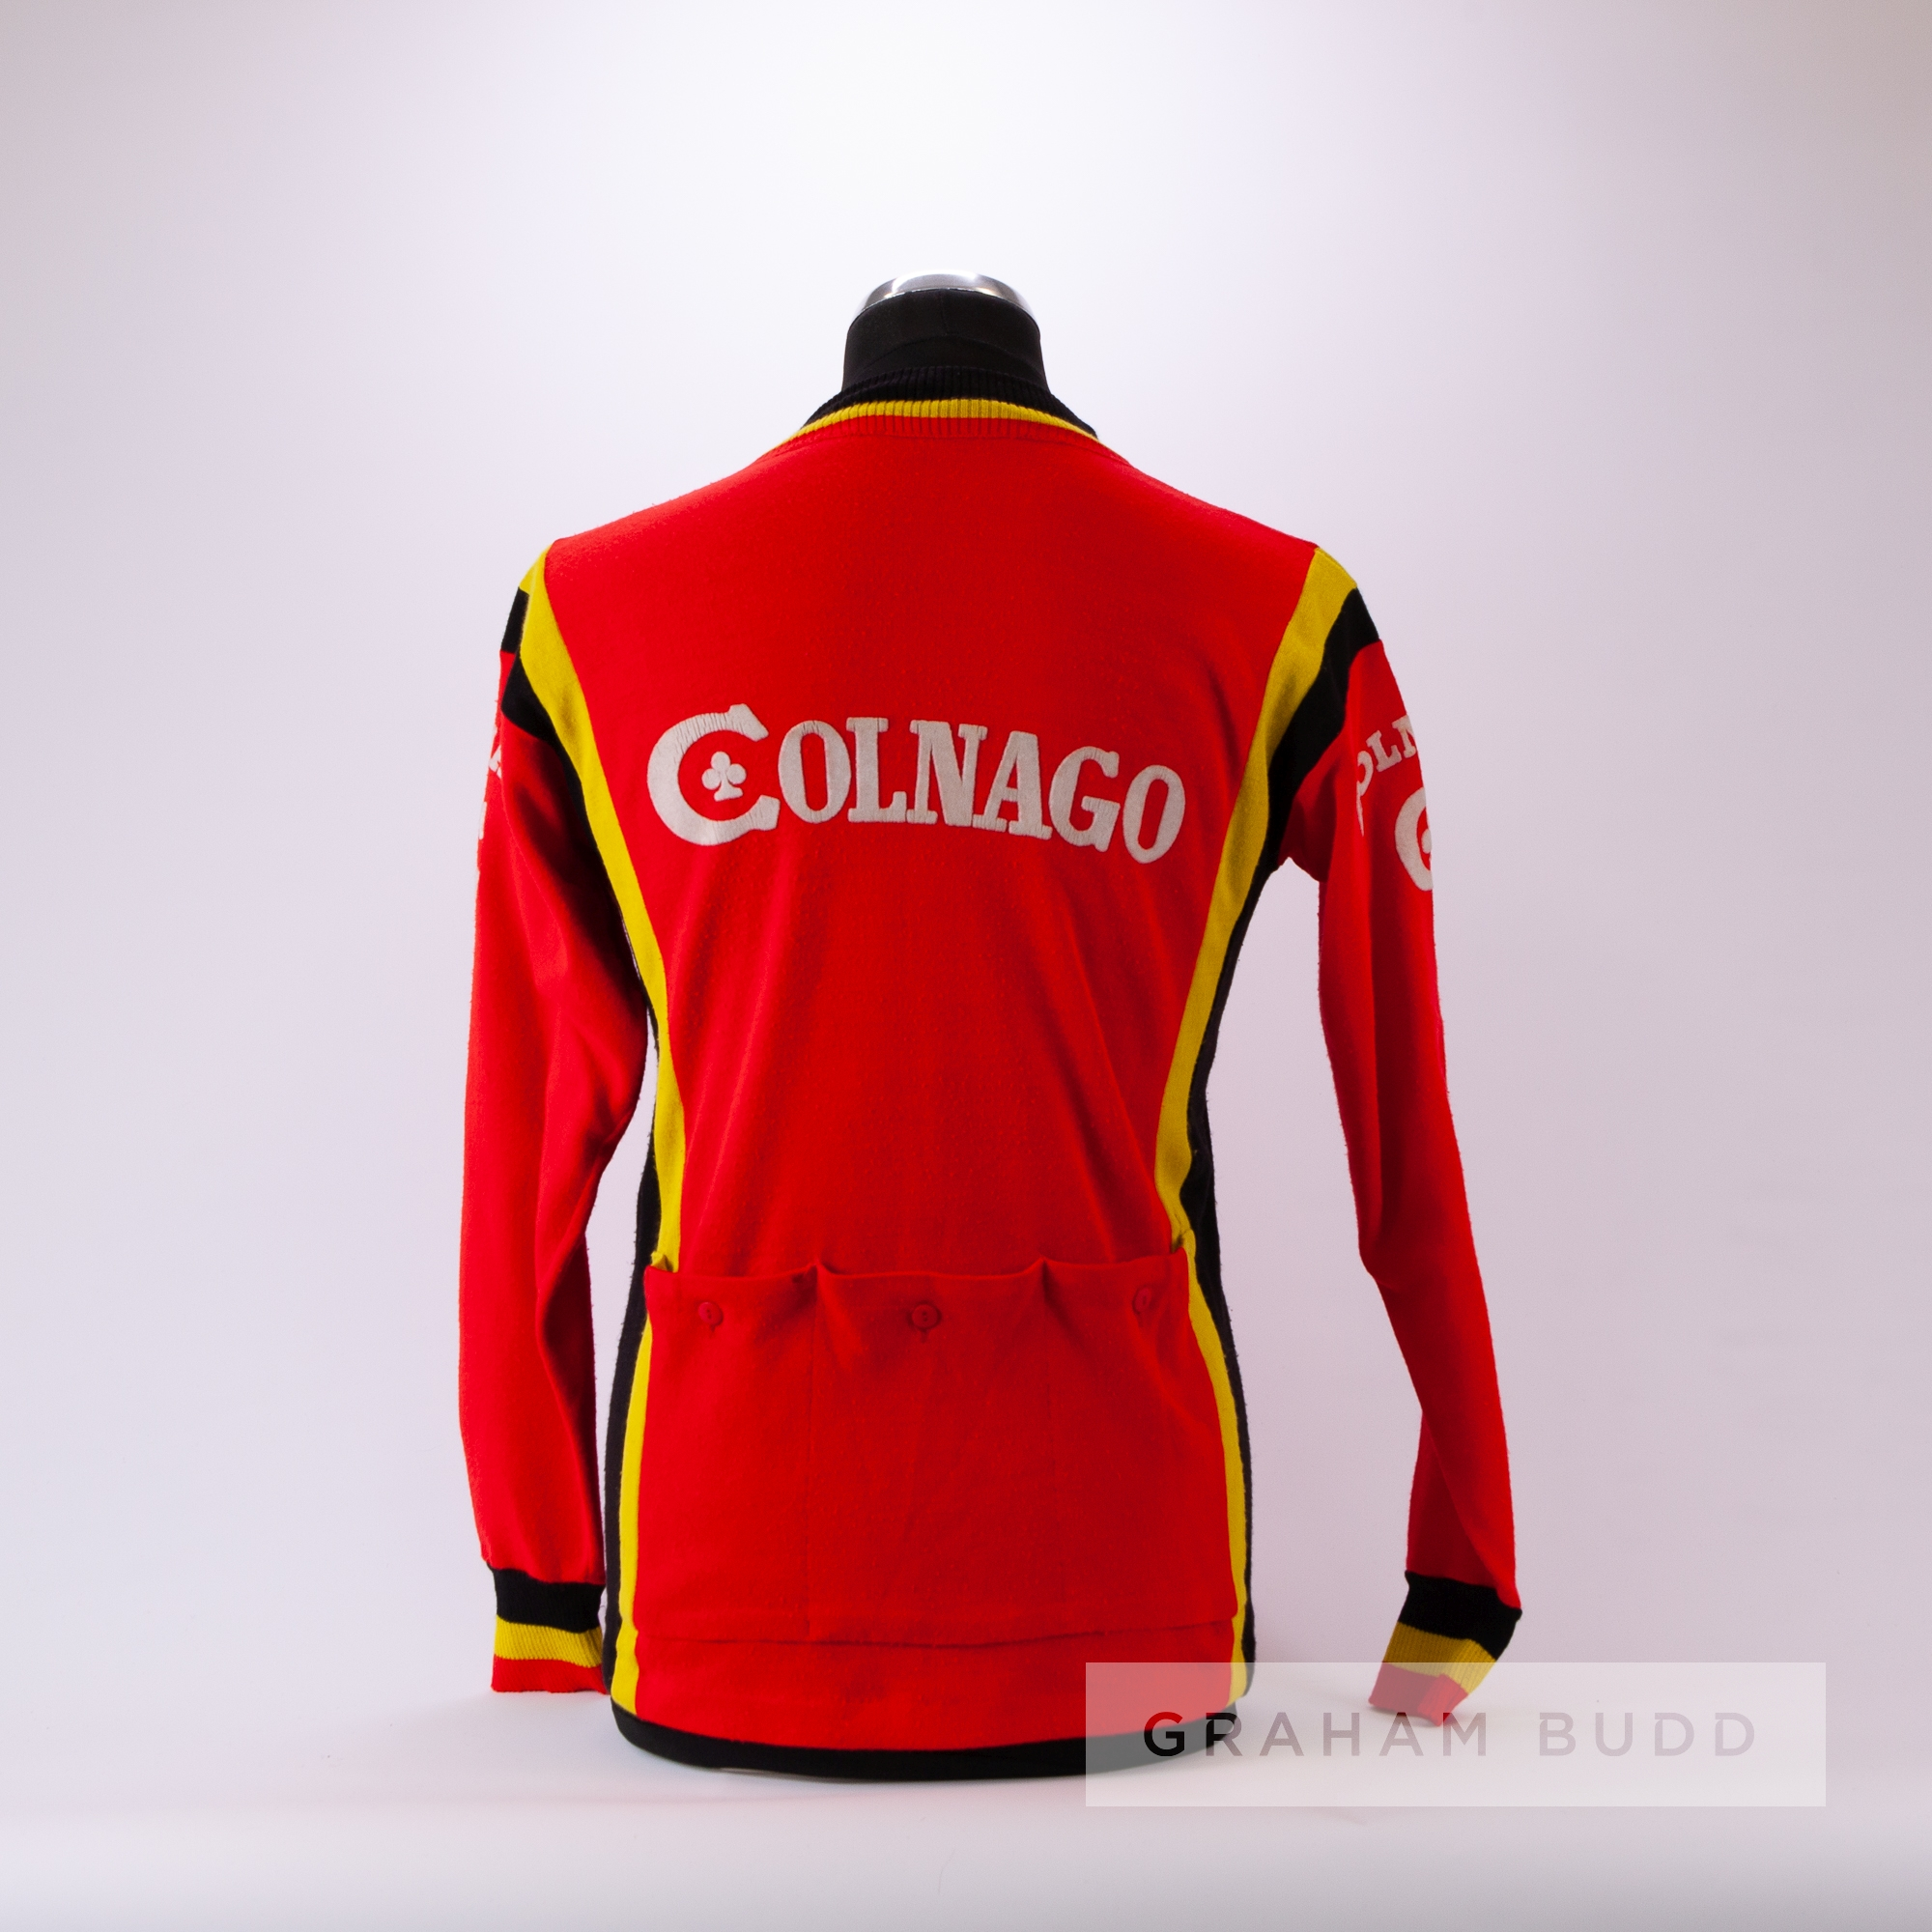 1977 red, yellow and black vintage Italian Colnago Eroica Cycling race/tour jersey, scarce, - Image 4 of 4